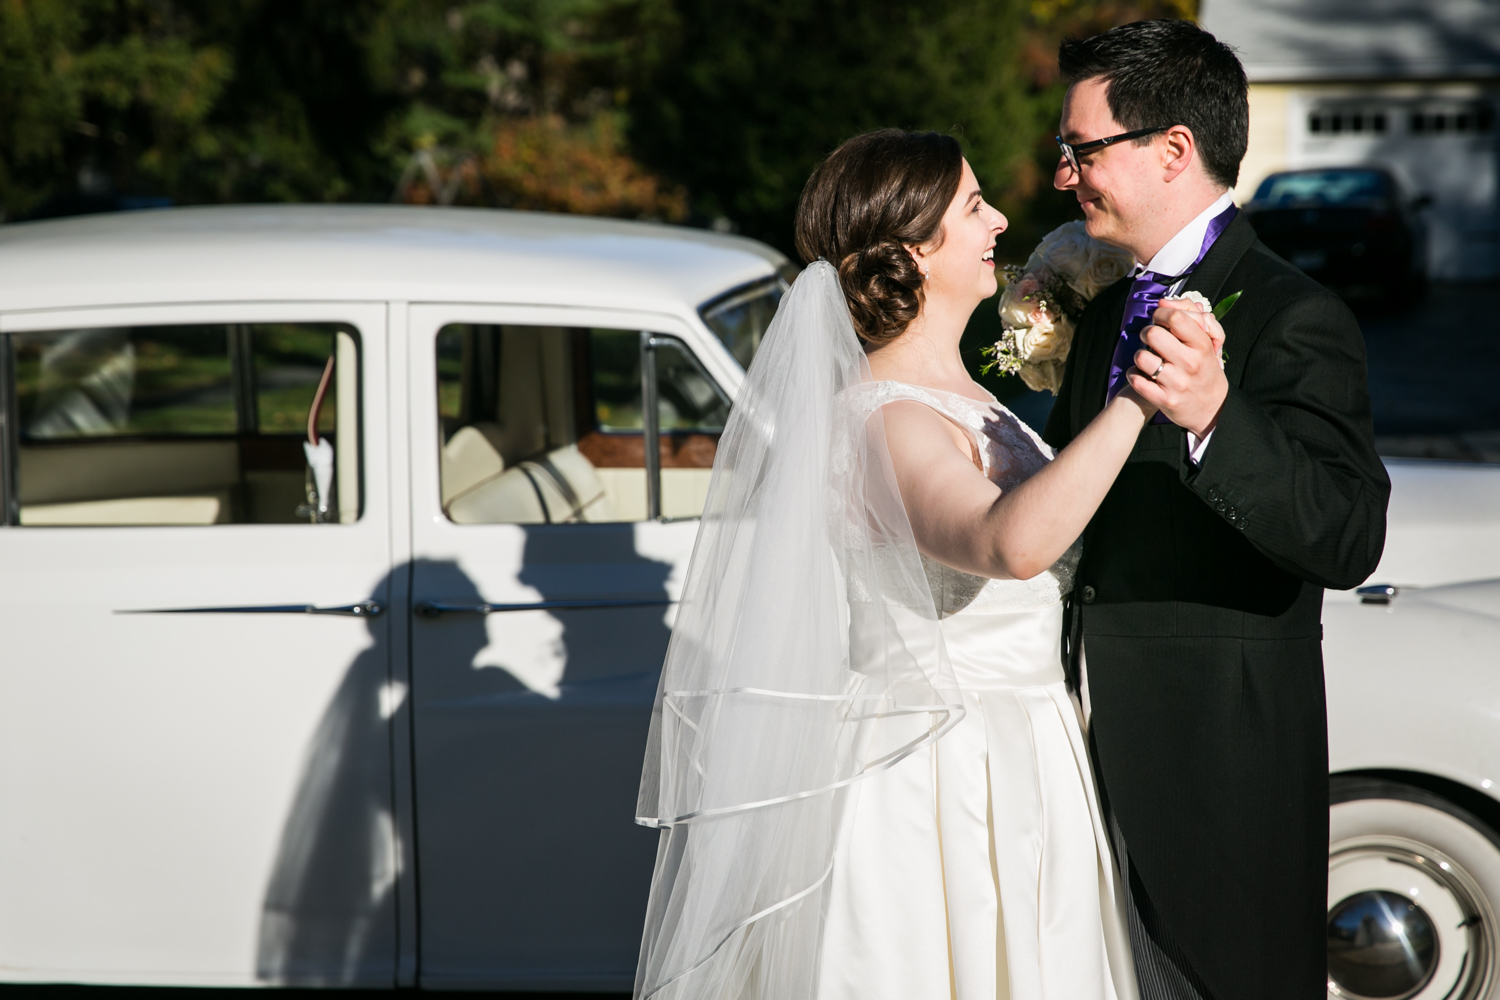 Bride and groom dancing in front of white Rolls Royce